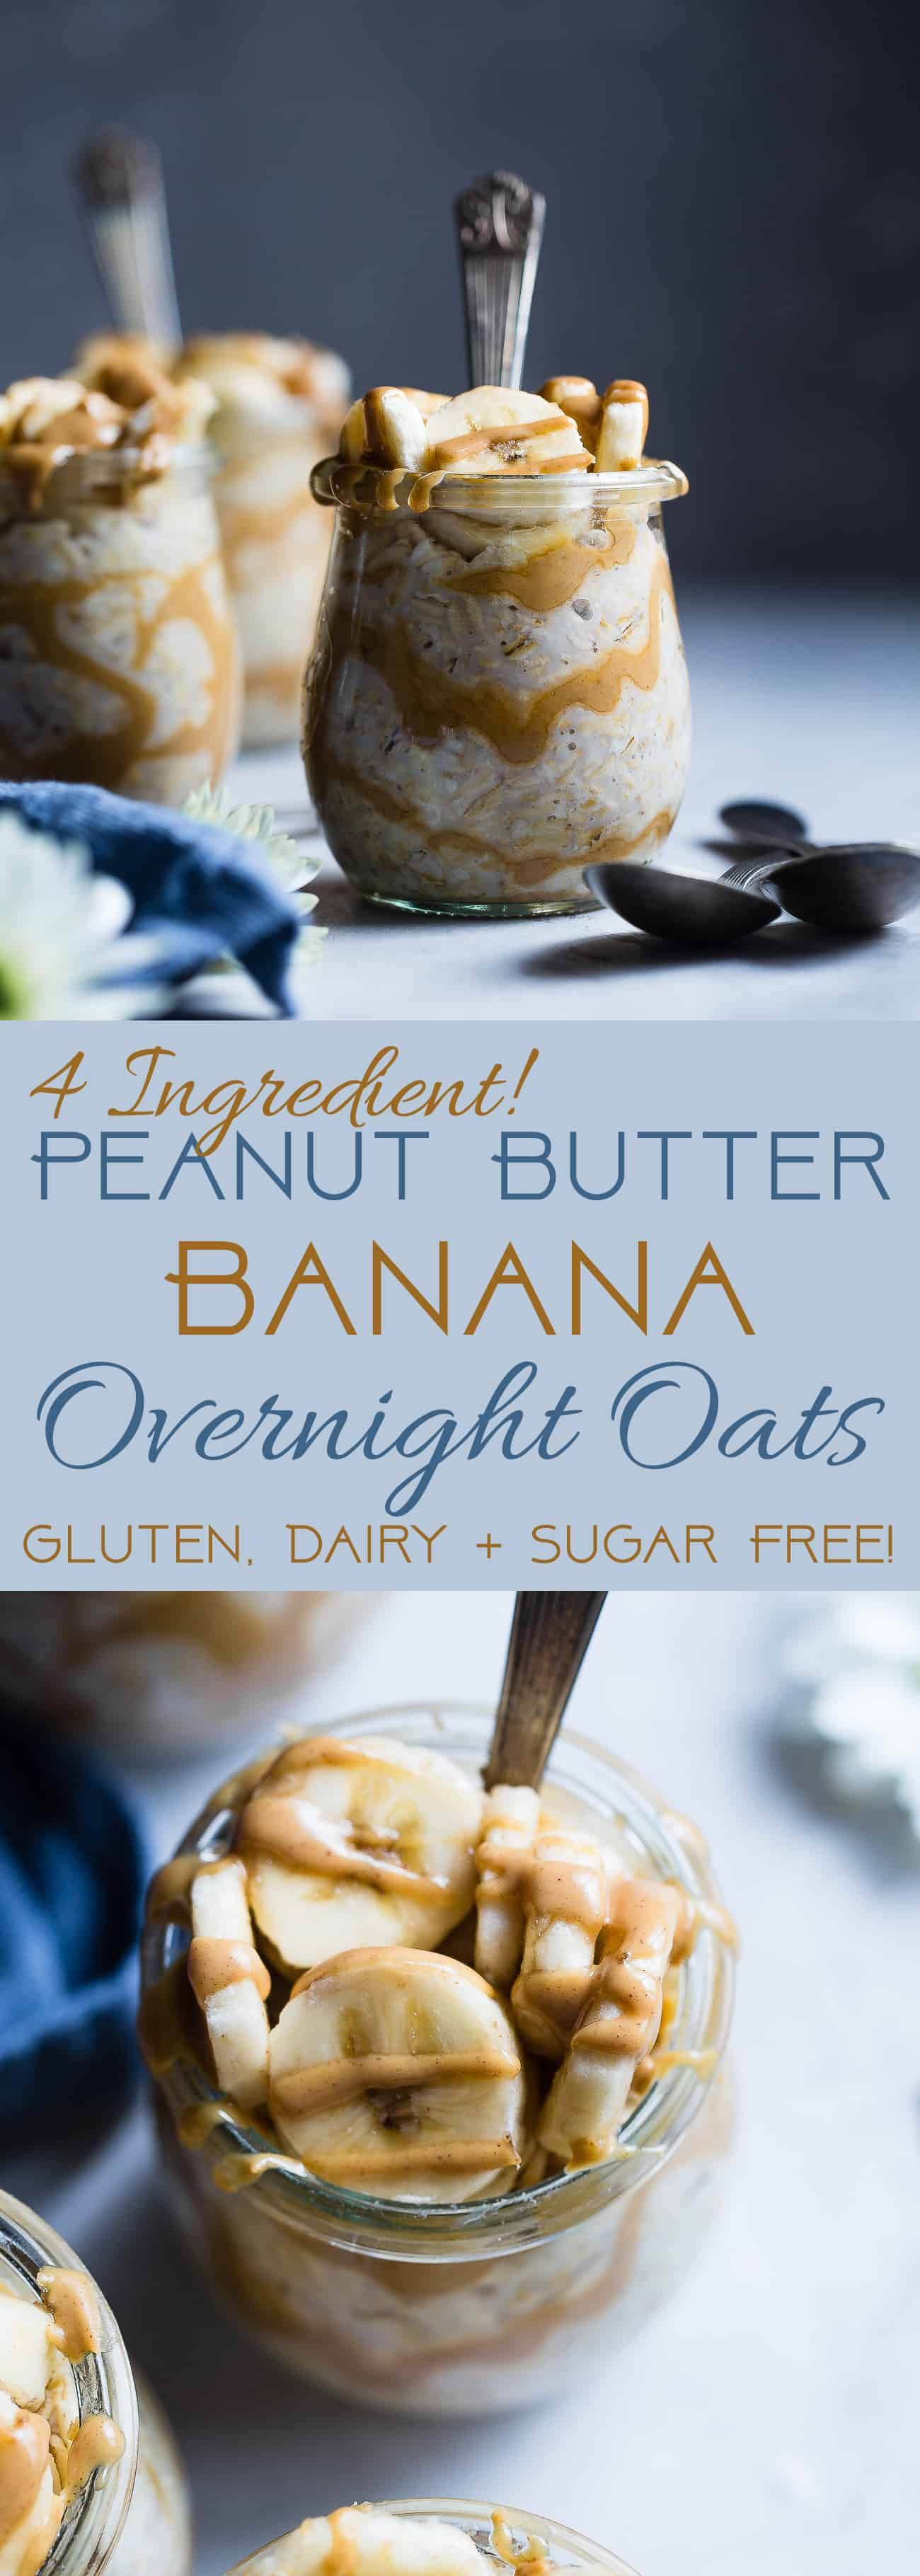 Banana Peanut Butter Overnight Oats -This make ahead, veganovernight oats recipe is a healthy, 4 ingredient way to start the day! dairy, sugar and, gluten free and kid friendly too! | |